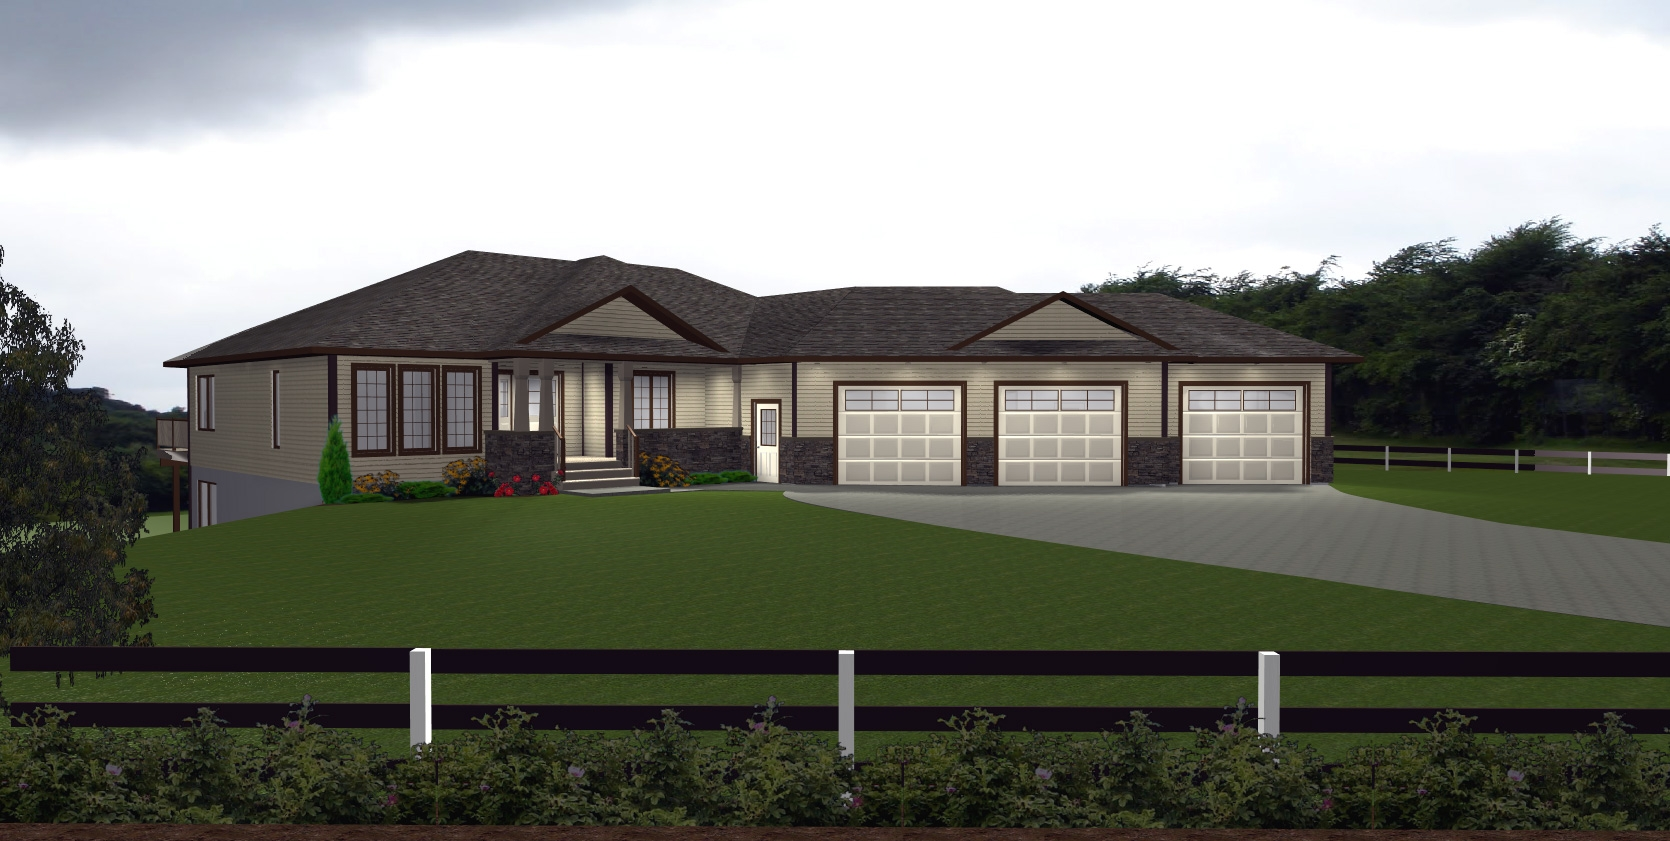 House Plans With Walkout Basement And Detached Garage